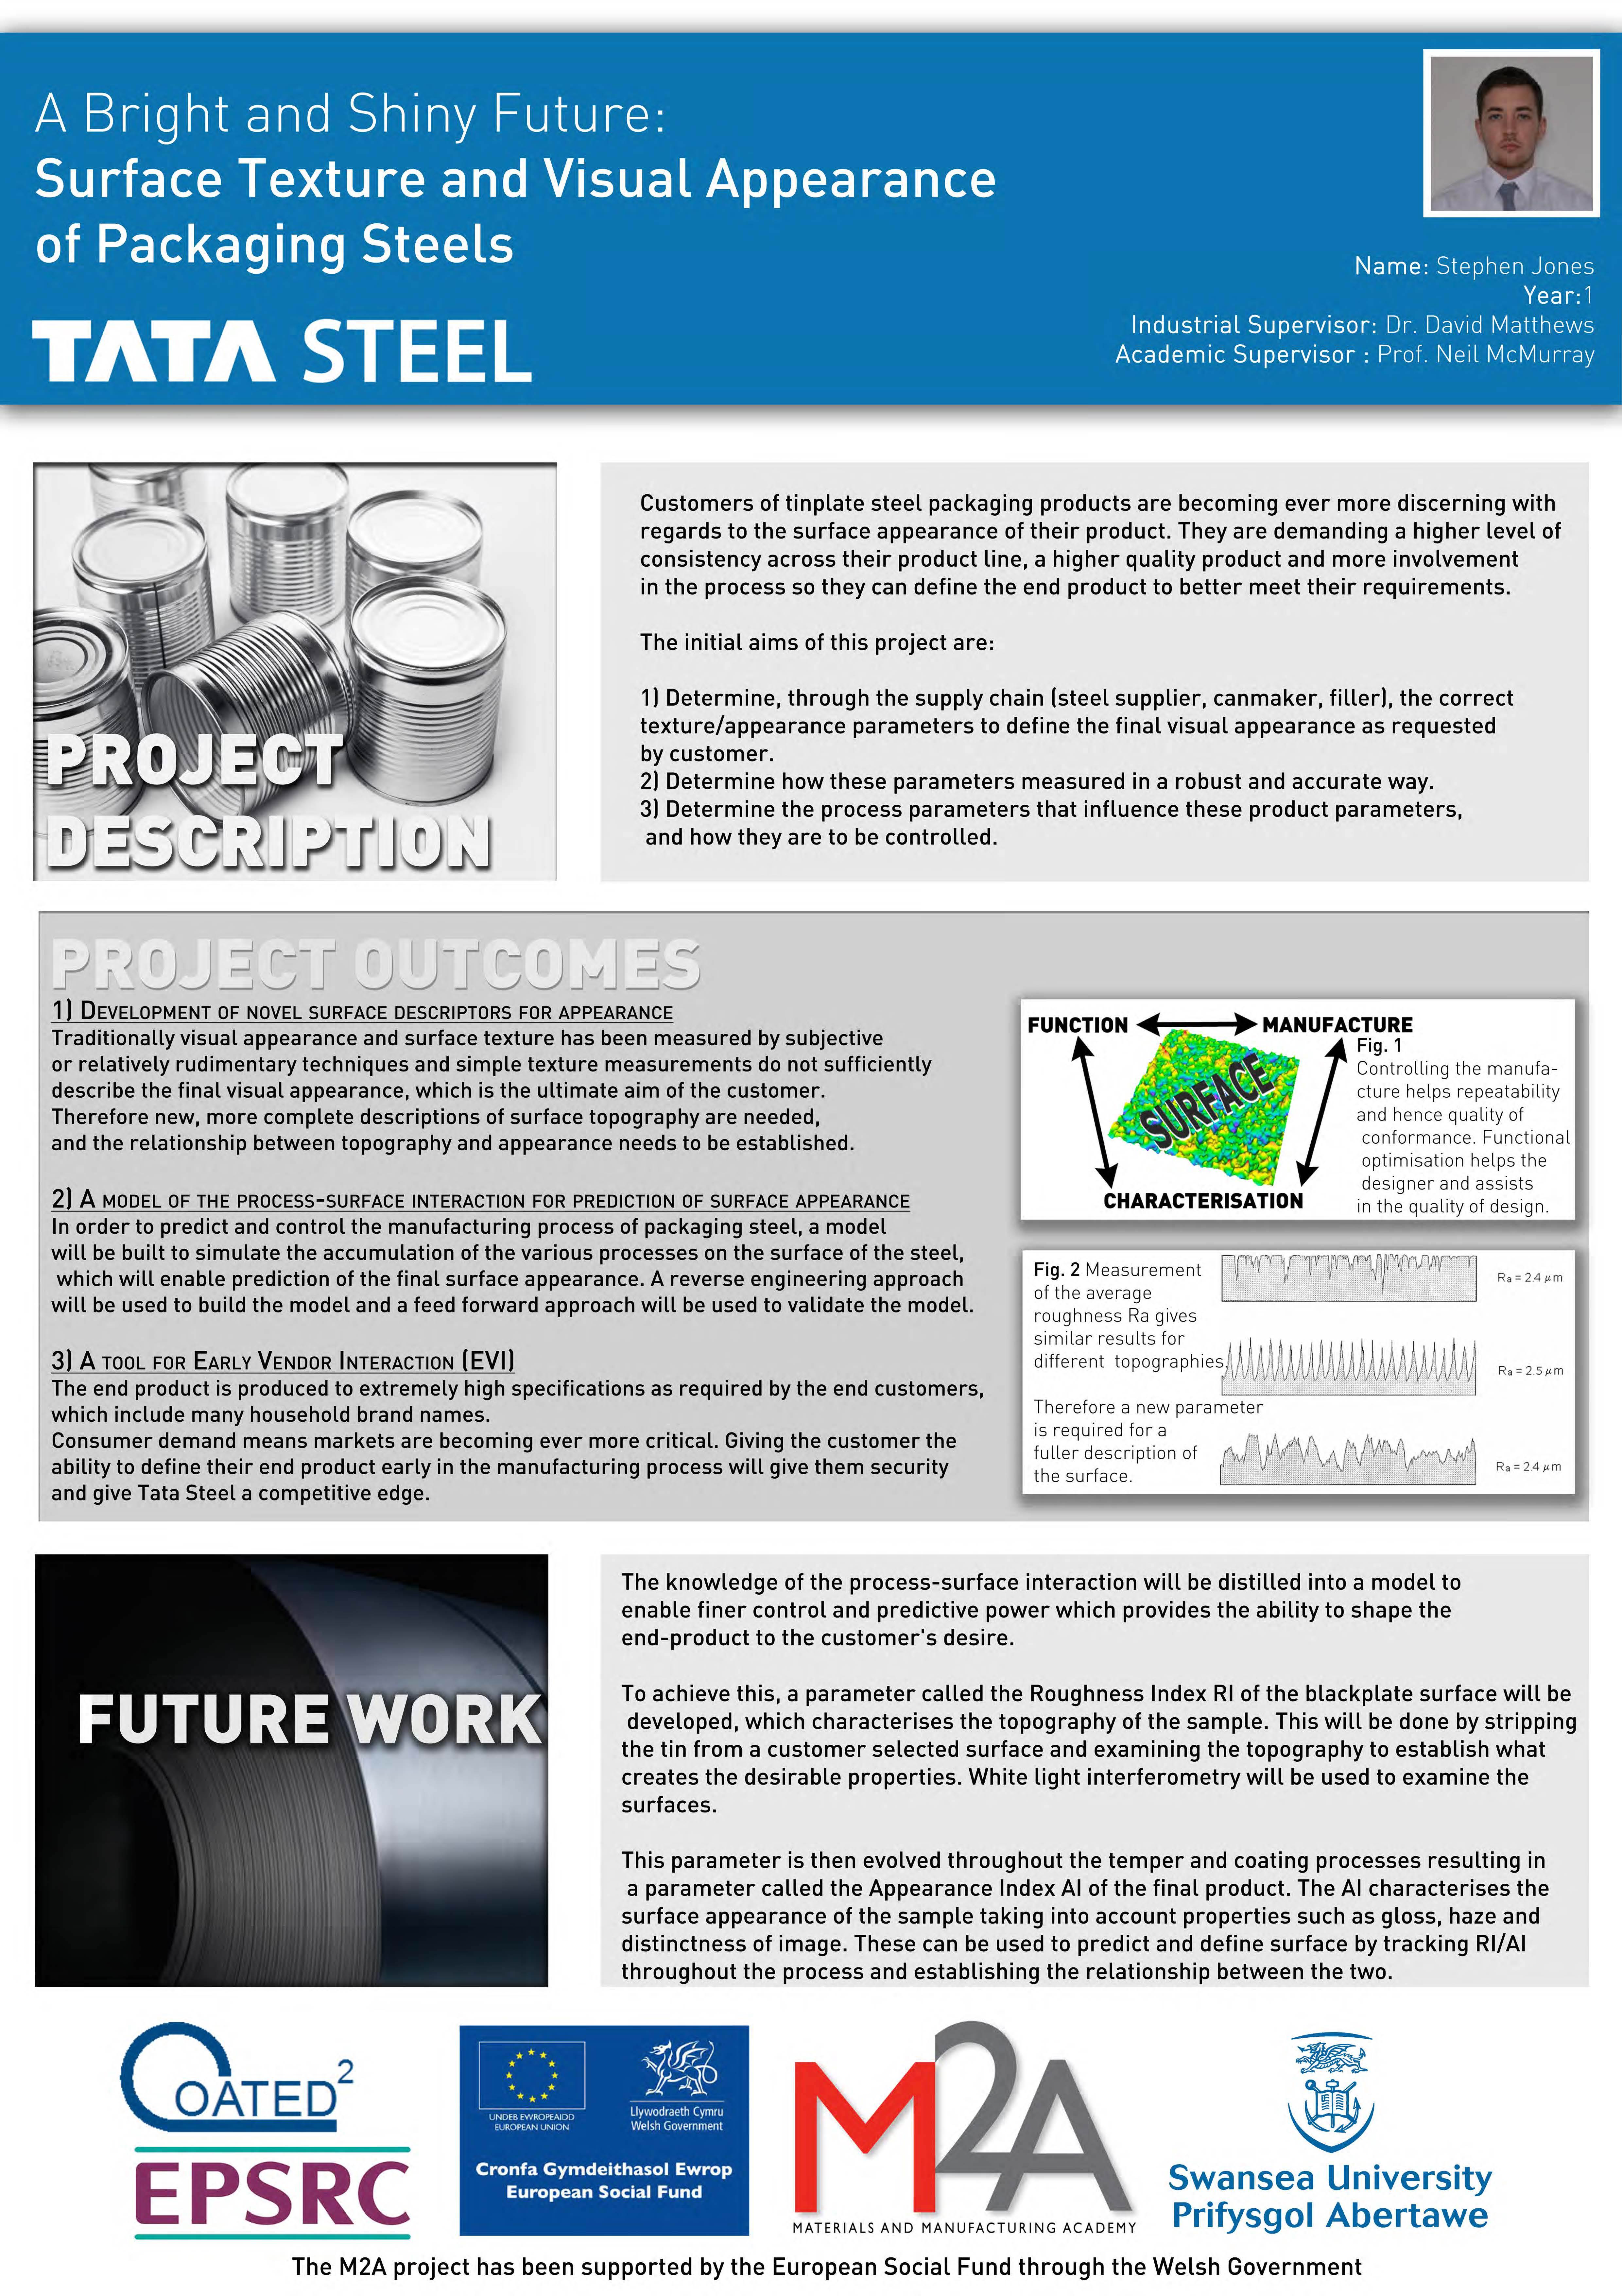 Surface Texture and Visual Appearance of Packaging Steels